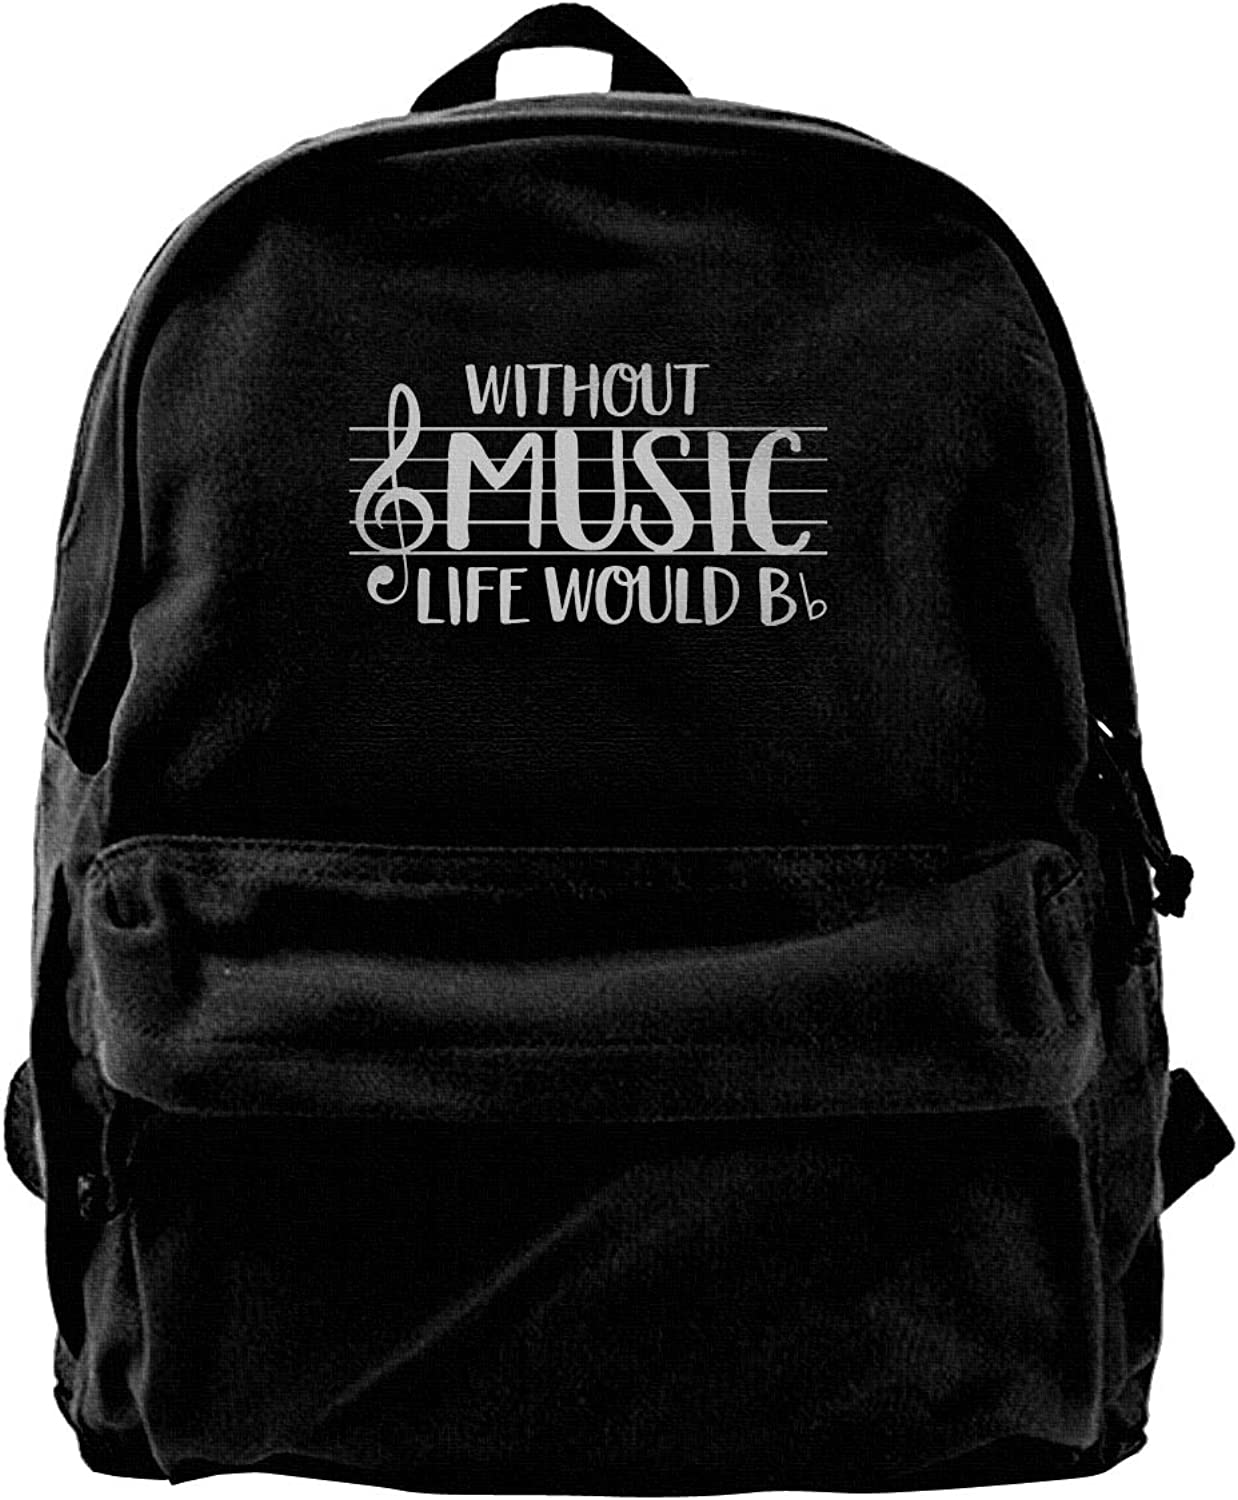 Without Music Life Would B Flat Fashion Lightweight Canvas Shoulder Backpack for Women & Men